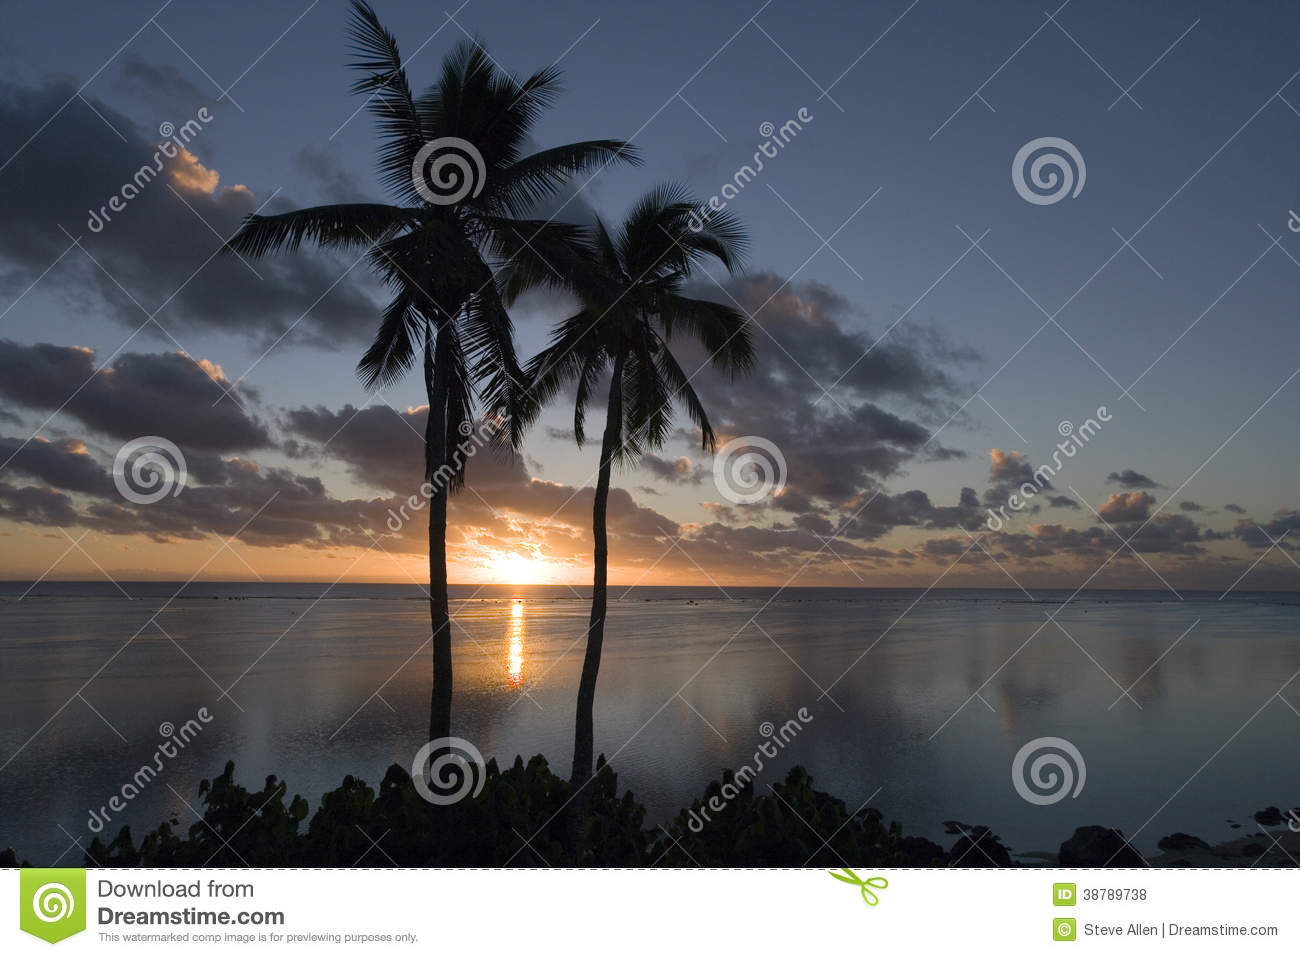 Sunset in the Cook Islands in the South Pacific